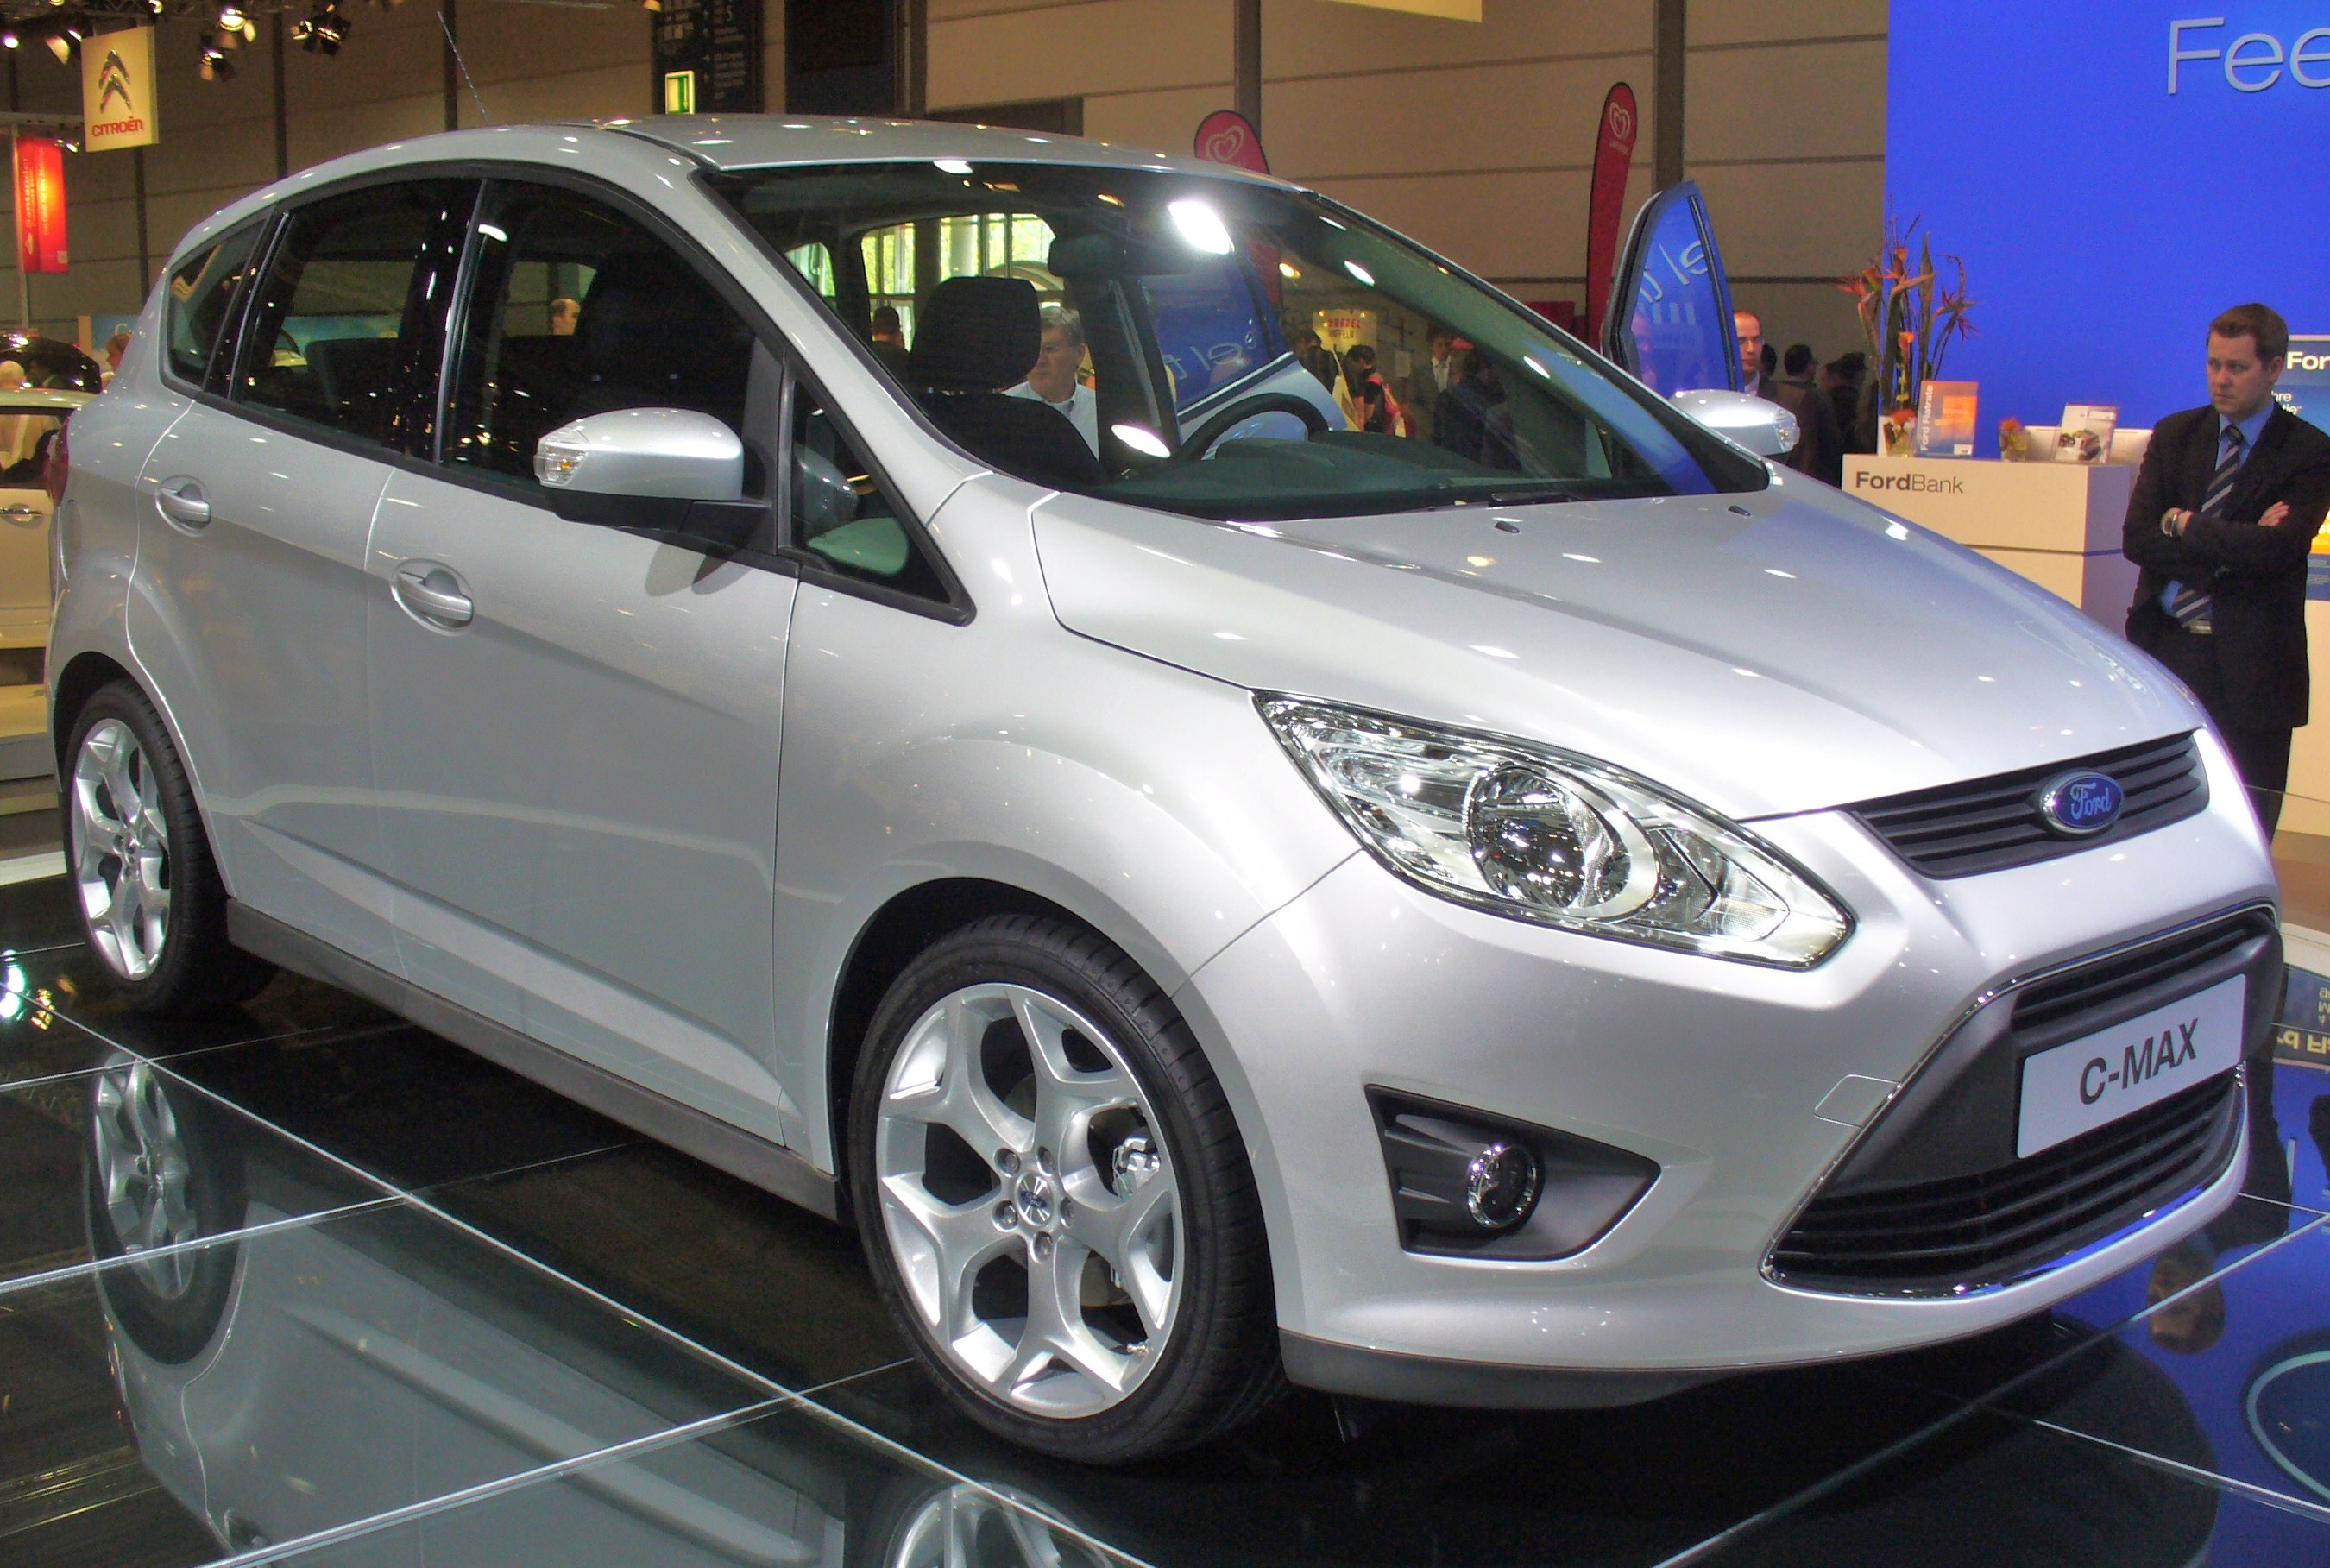 2010 Ford C-Max #1